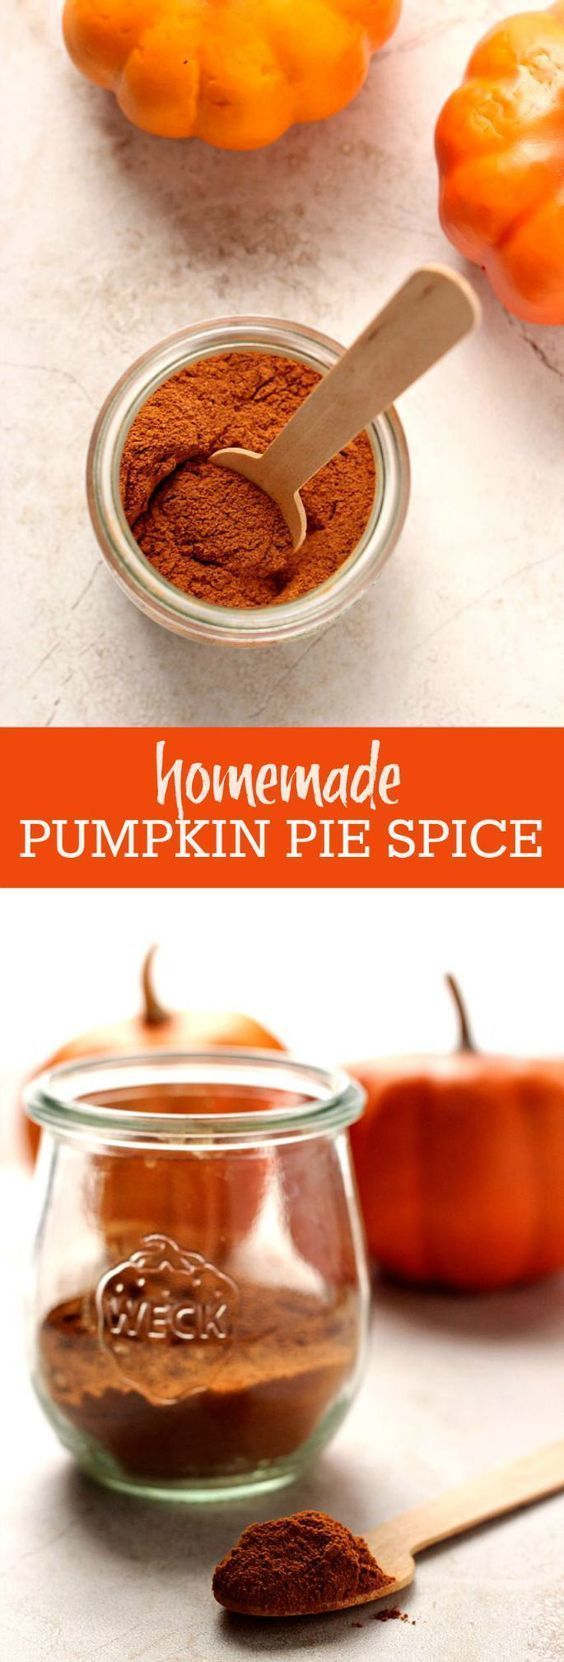 Homemade Pumpkin Pie Spice make your own spice mix in